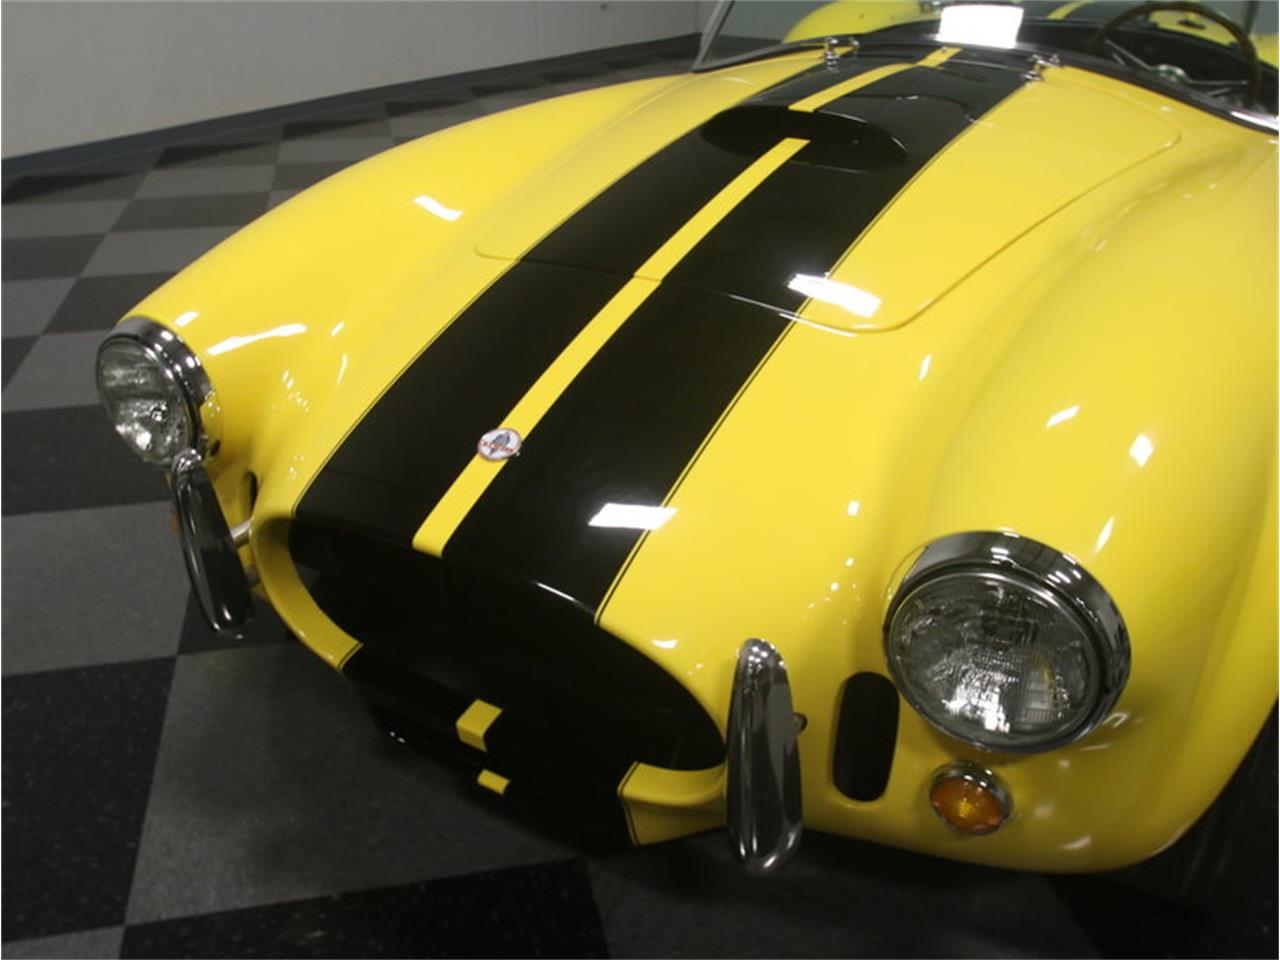 Large Picture of 1966 Shelby Cobra Replica located in Georgia - $34,995.00 Offered by Streetside Classics - Atlanta - LAUM